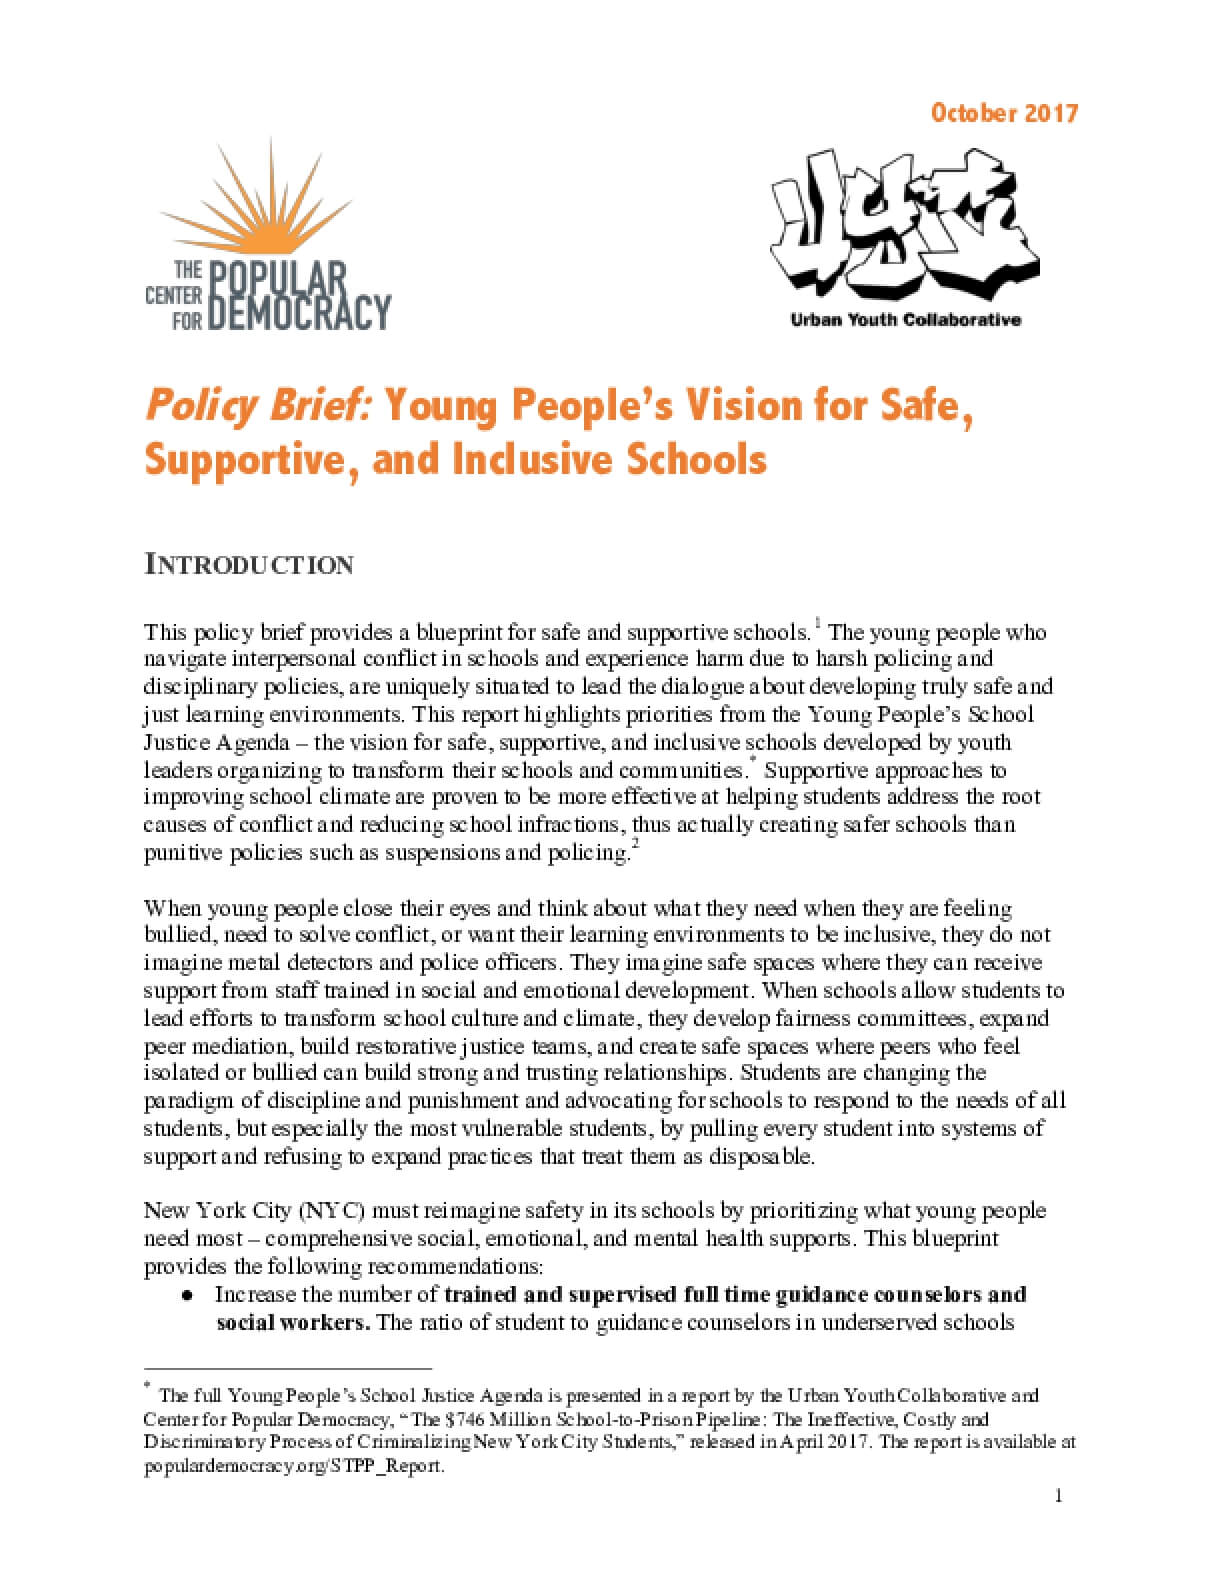 Young People's Vision for Safe, Supportive, and Inclusive Schools